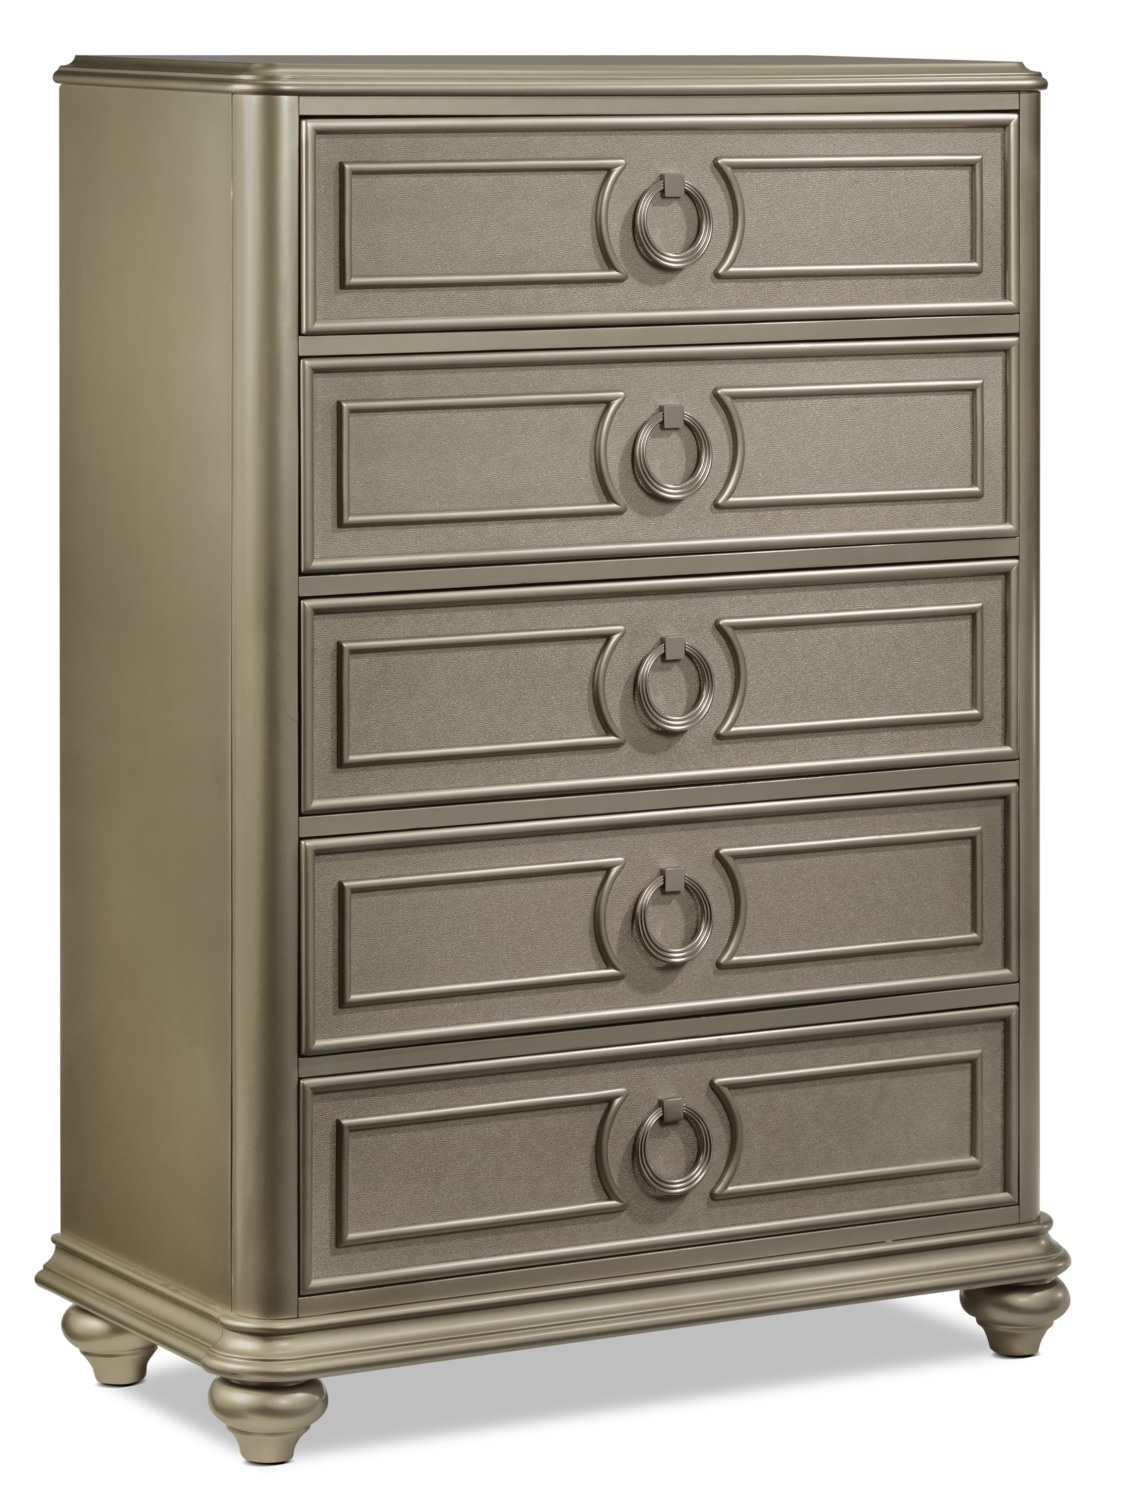 Bedroom Furniture - Dynasty Chest - Gold